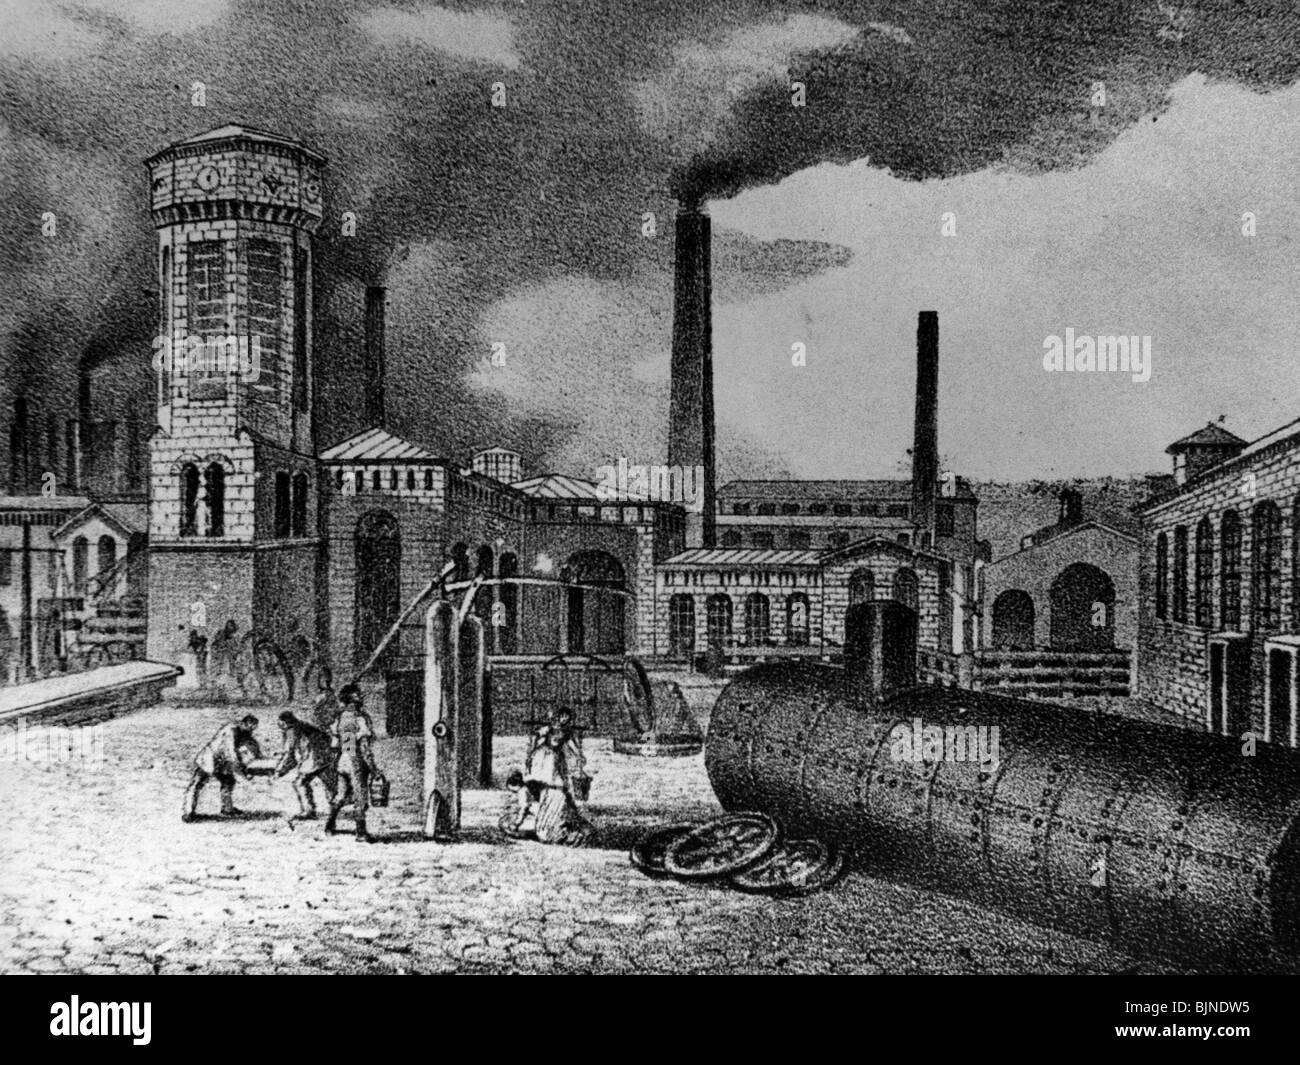 effects of industrialisation The positives of industrialization on us society in the late 19th century/ early 20th century november 12, 2010 by kellydog10 another widely positive effect of industrialization had to do with the vast improvements made in the manufacturing industry around this time.